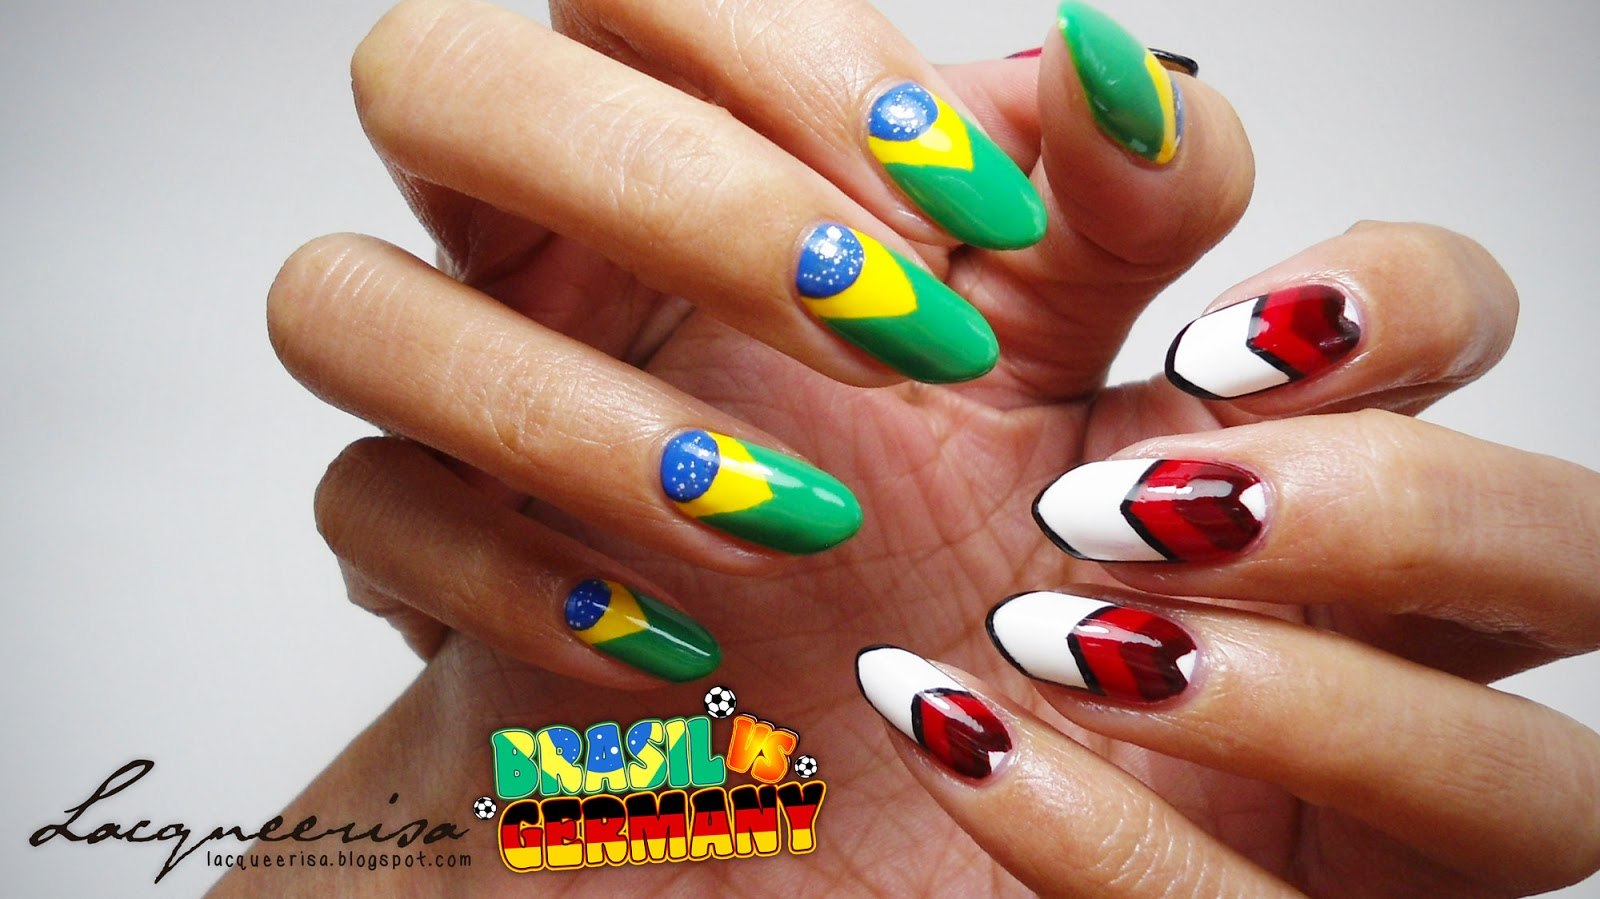 Brazil vs Germany Nails lacqueerisa.blogspot.com